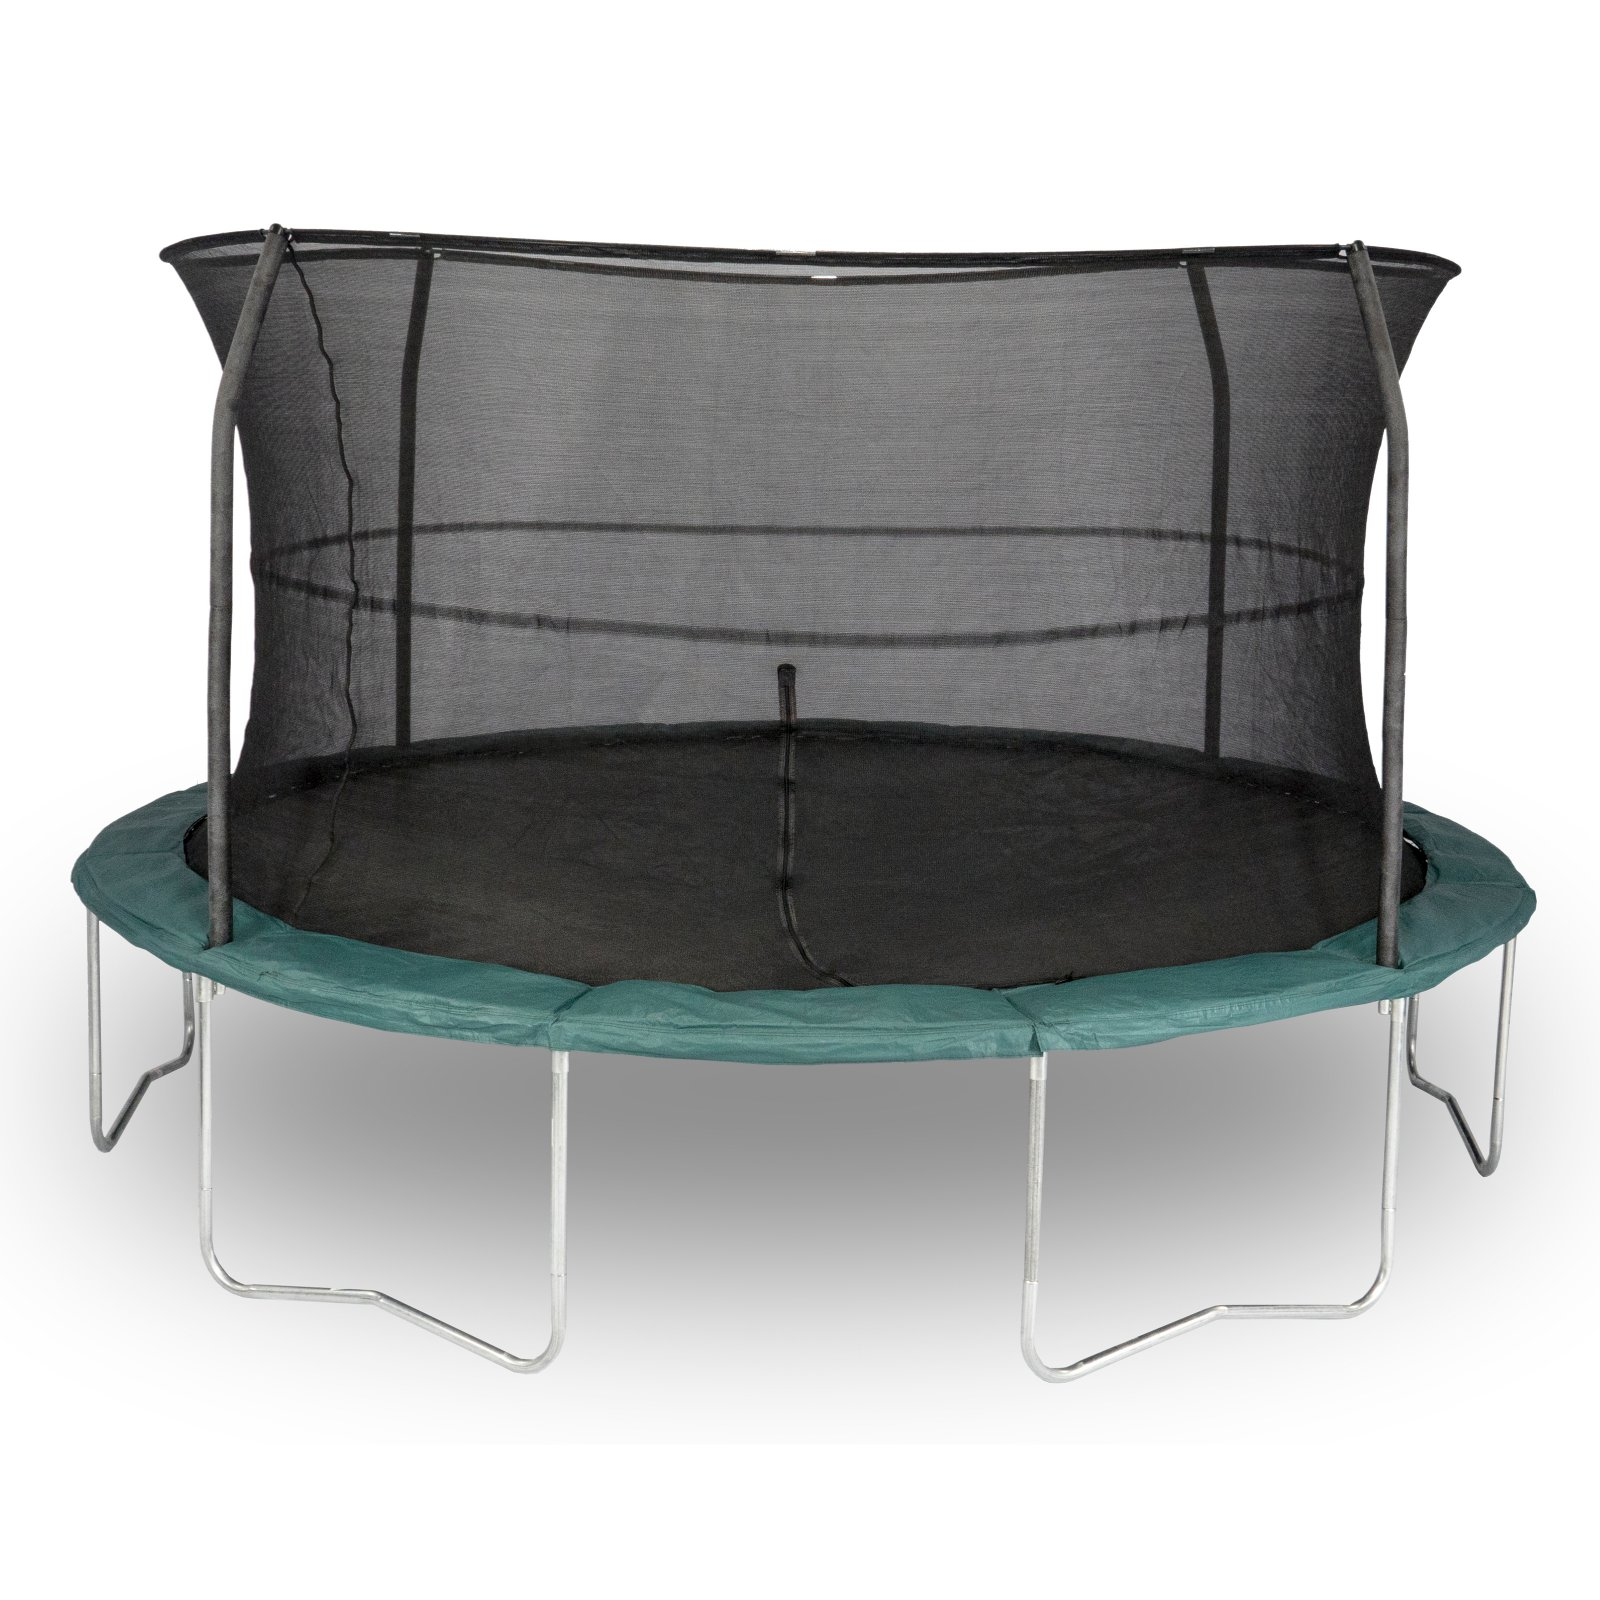 Orbounder 14 ft. Trampoline and Enclosure